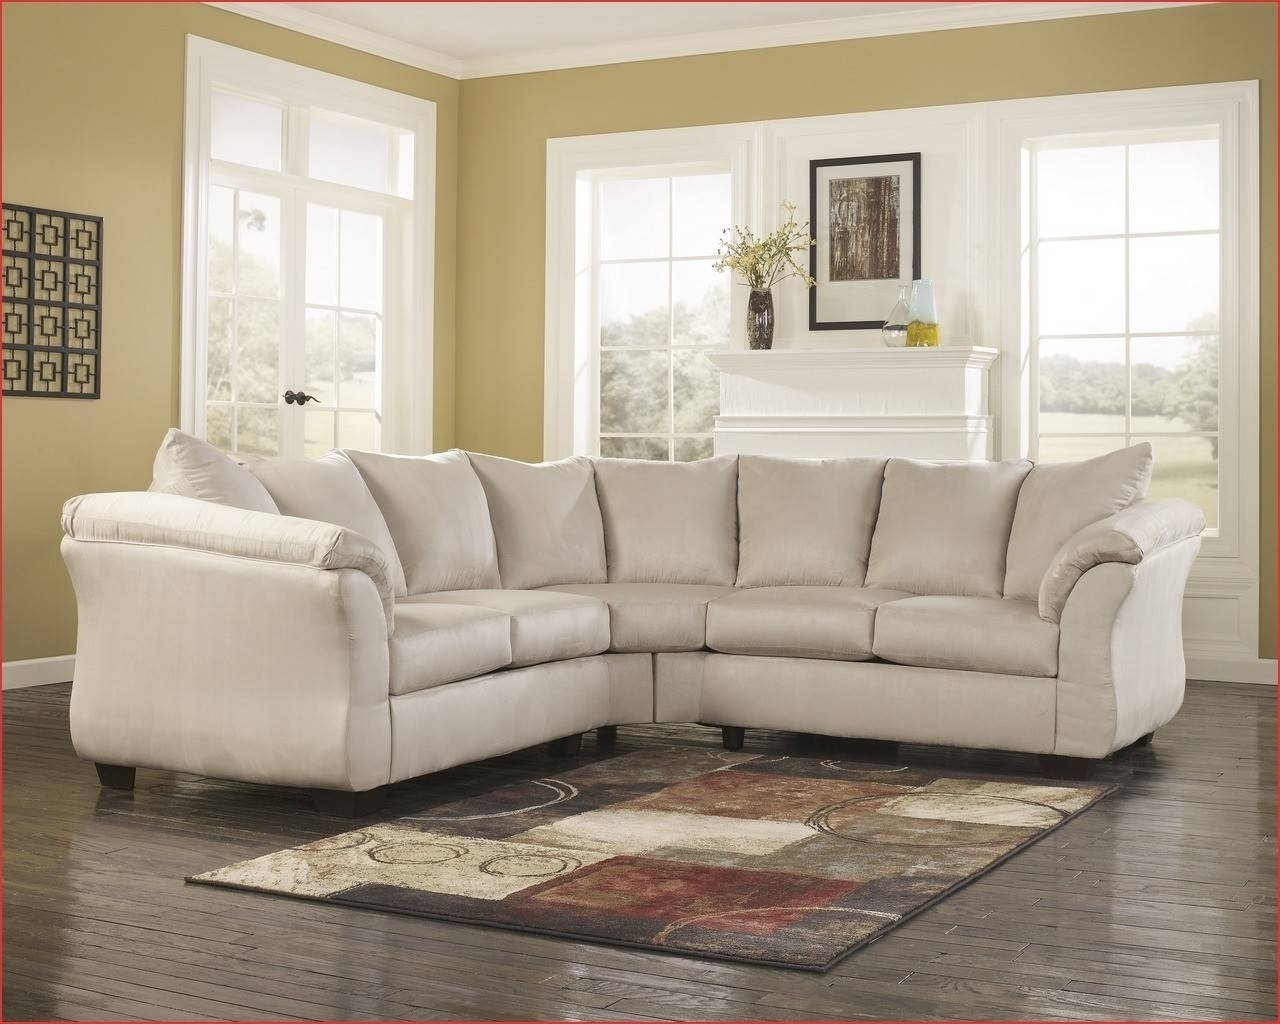 Collection Sectional Sofas Rochester Ny – Mediasupload With Rochester Ny Sectional Sofas (View 2 of 10)